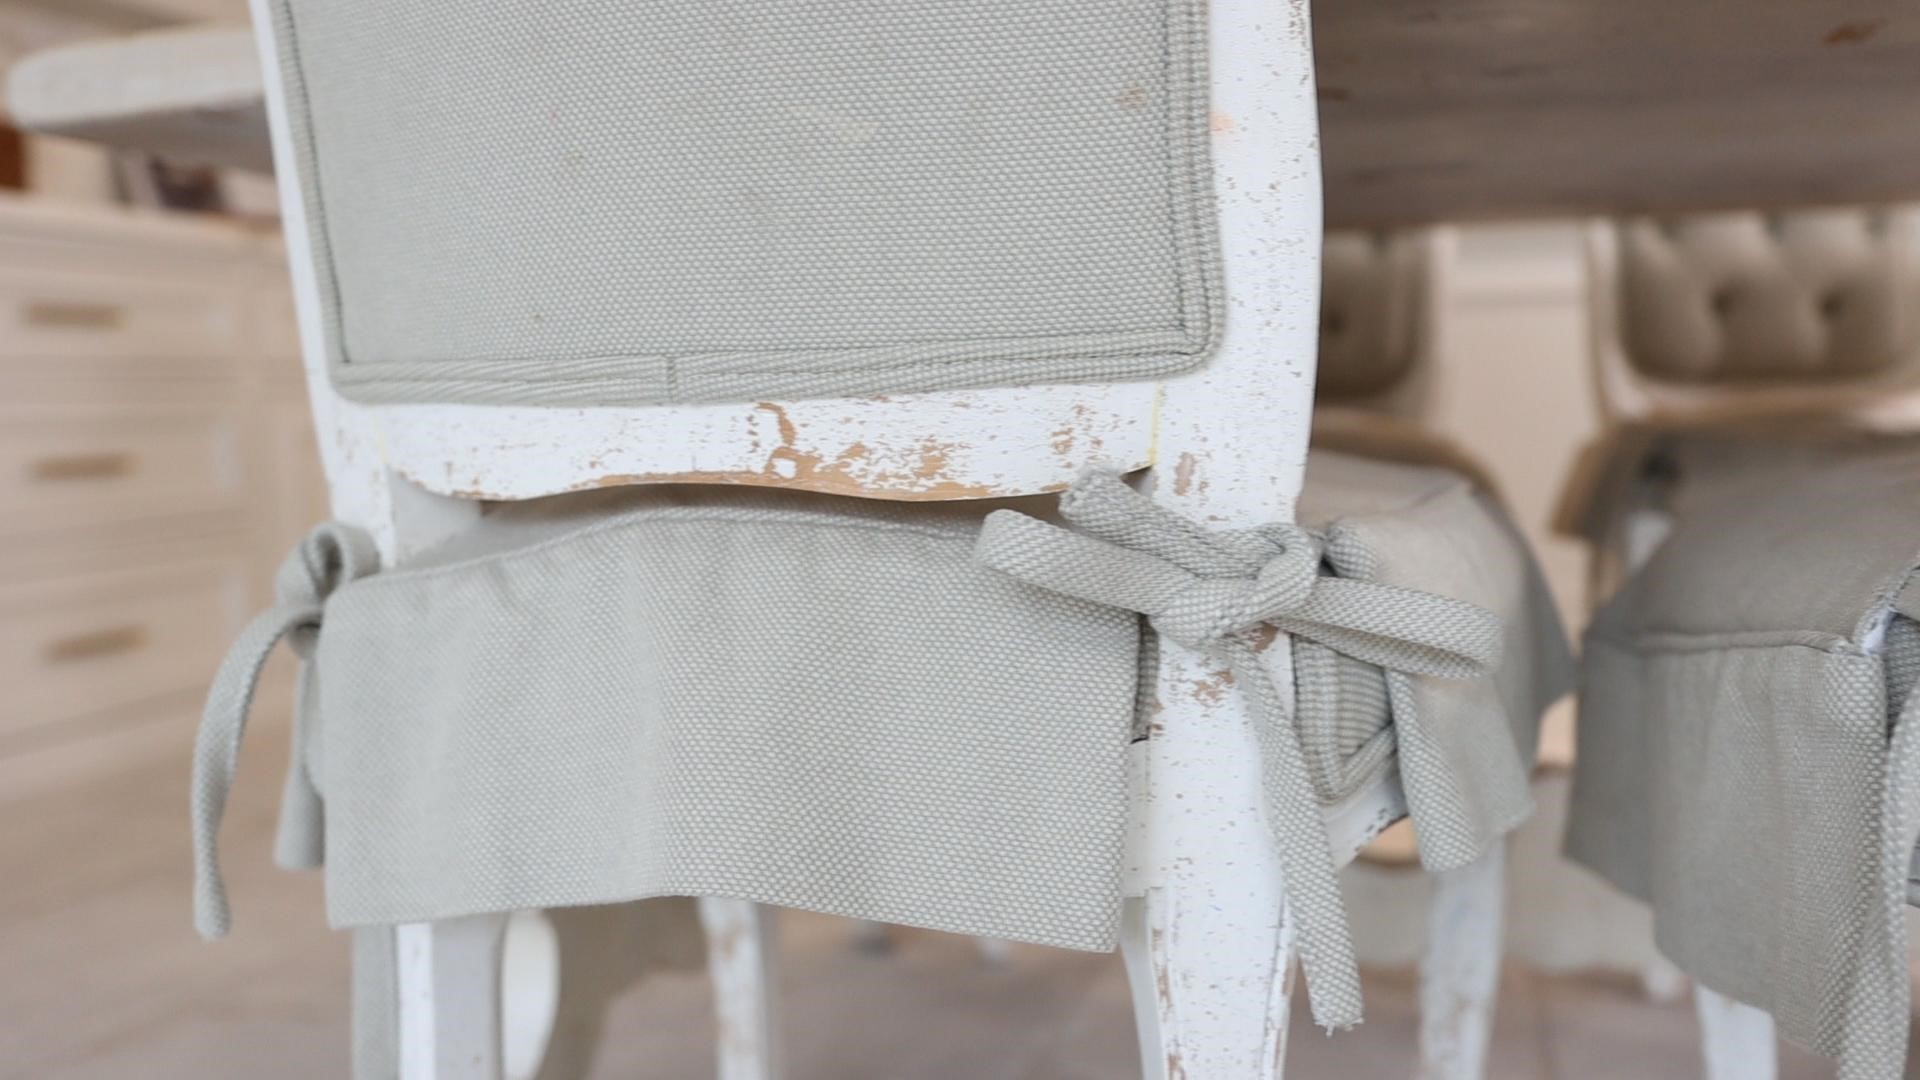 A close-up view of the DIY washable chair skirts